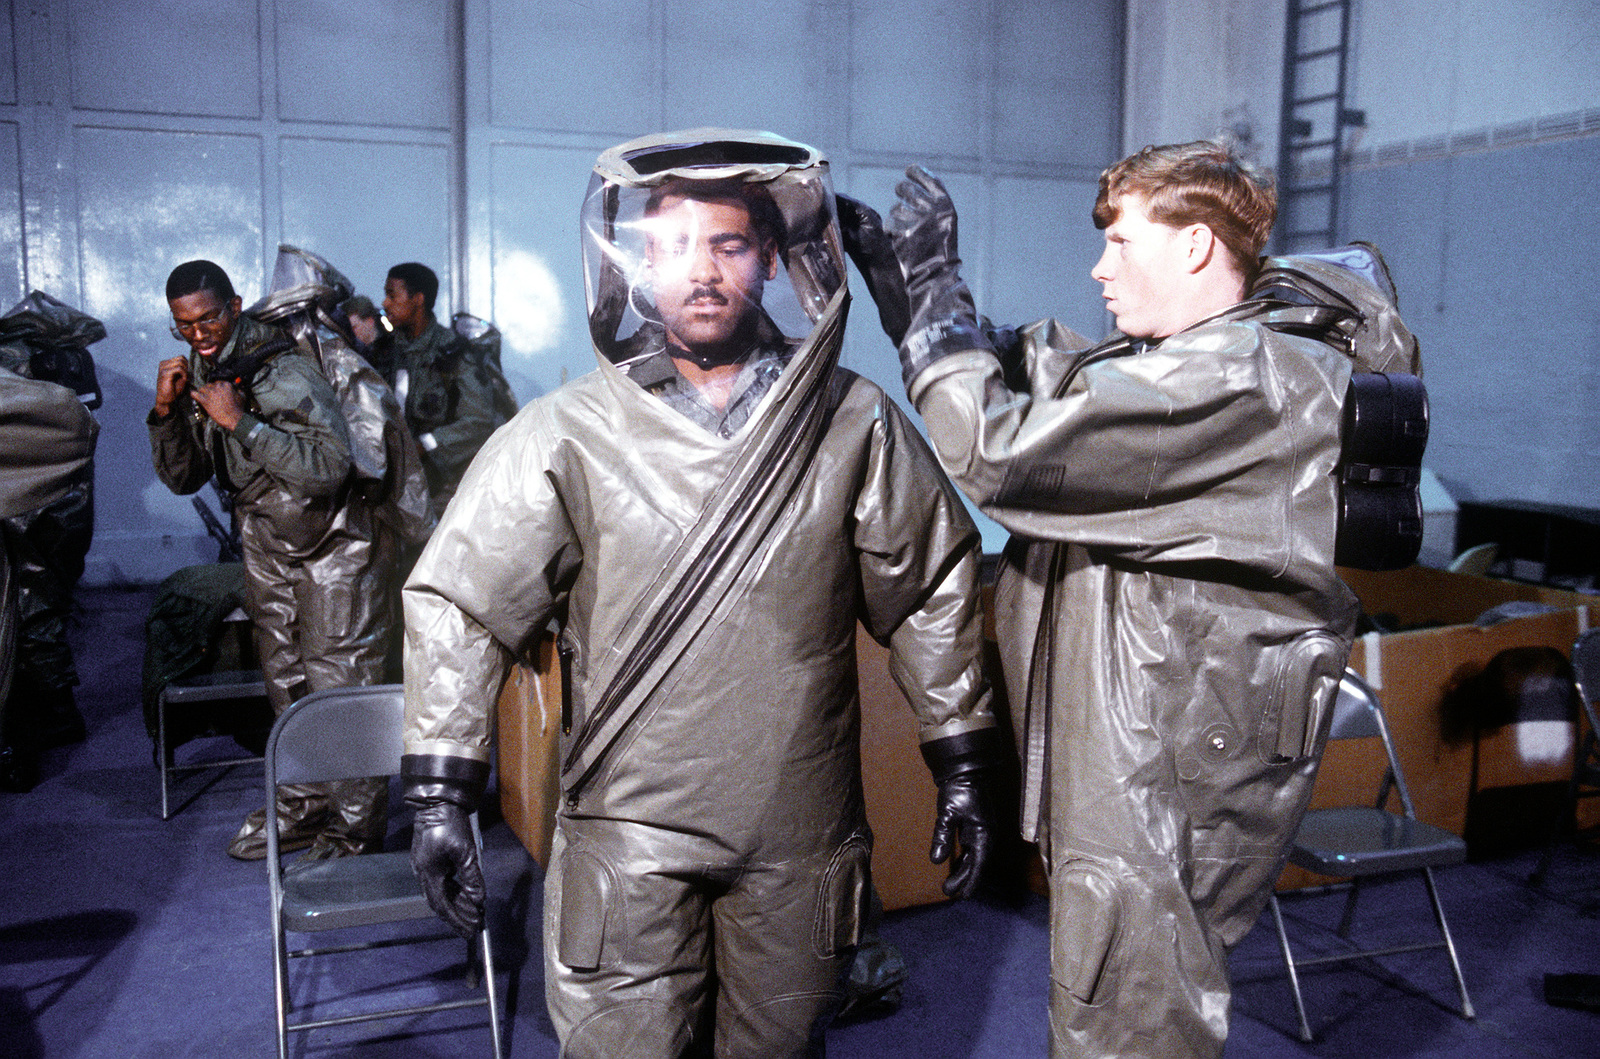 Sergeant Lysle Glass, 52nd Aircraft Generation Squadron, helps Staff Sgt. Charles Cooks, also from the 52nd AGS, get into an impermeable chemical defense protective ensemble system (IMPS) during exercise Salty Demo '85. Salty Demo '85 is an air base survivability exercise evaluating passive and active defenses, aircraft operation and generation, and base recovery systems